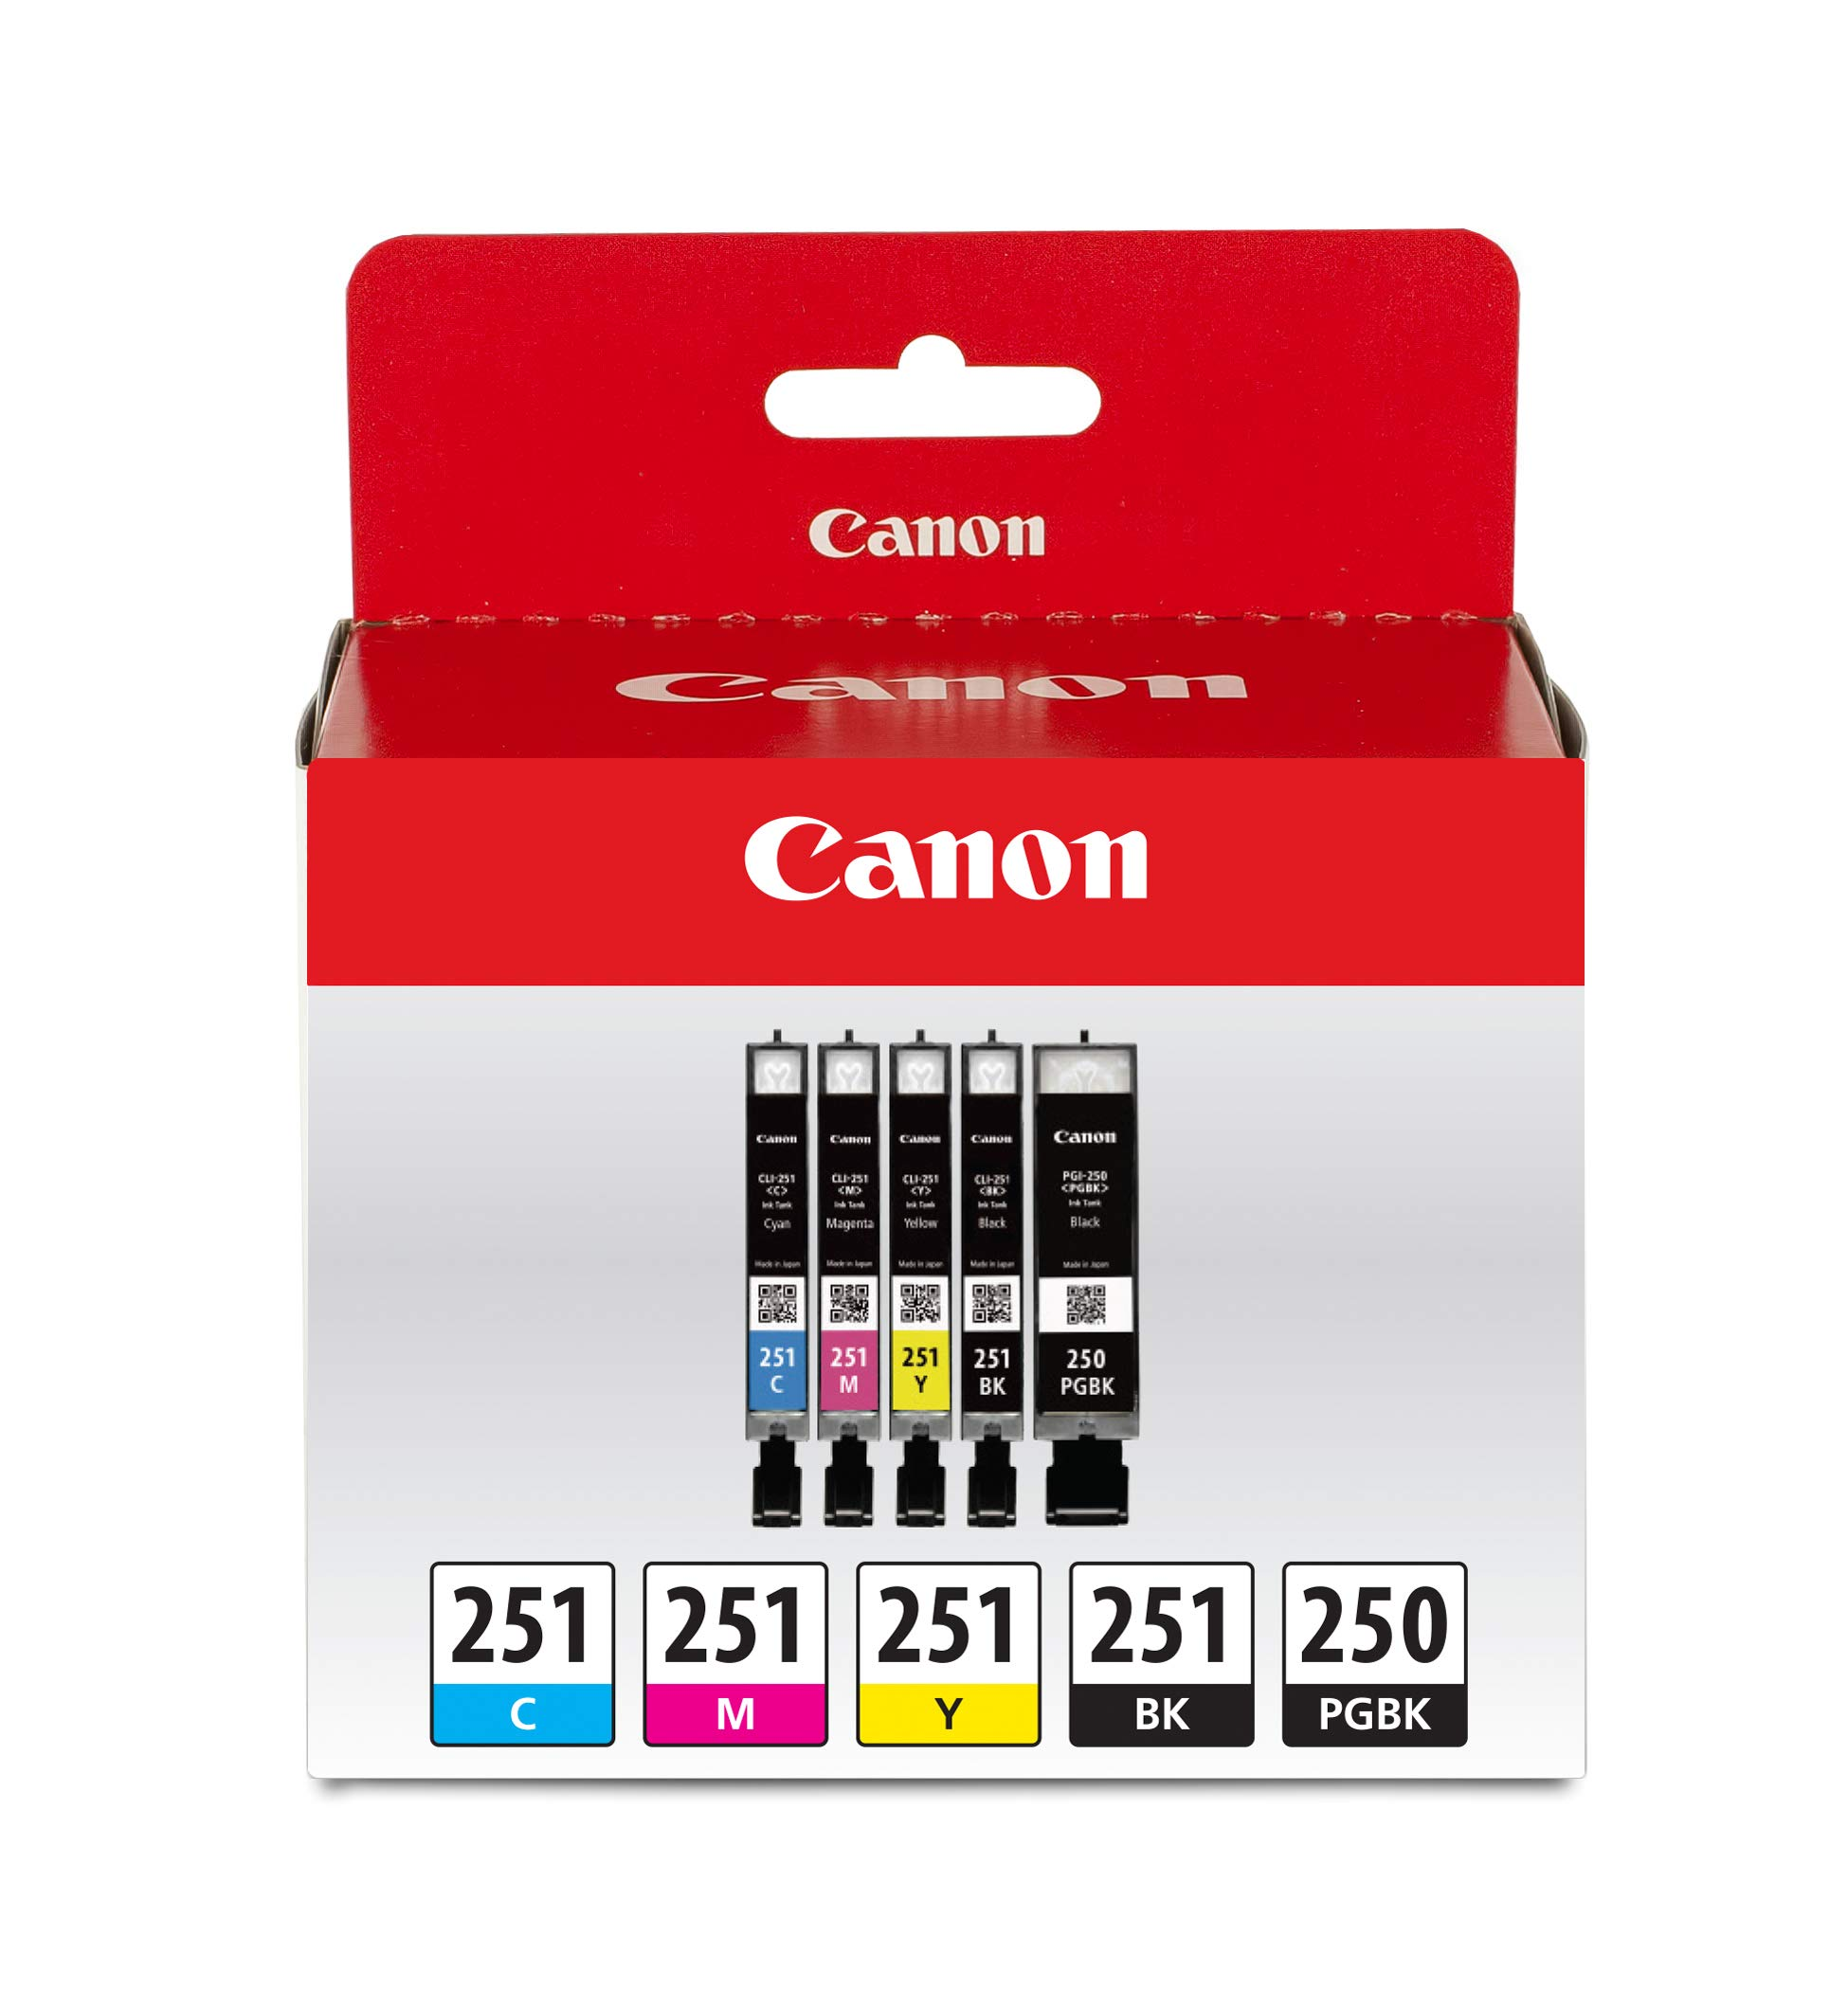 Canon PGI-250XL Black High Yield and CLI-251 B/C/M/Y Black & Color Ink Cartridges (6432B011), Combo 5/Pack by Canon